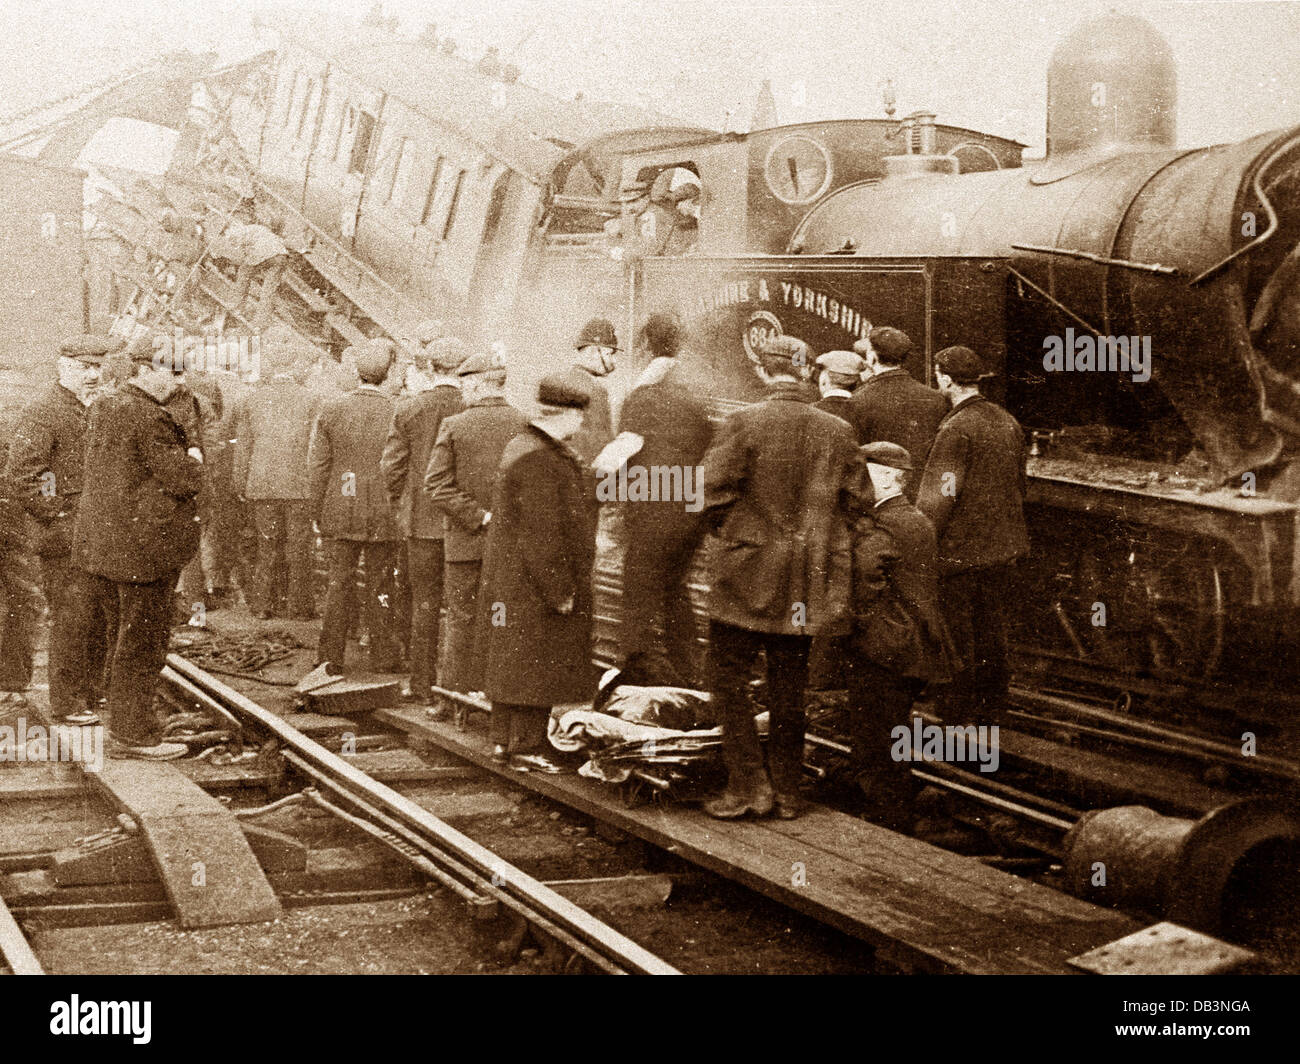 Huddersfield Railway Accident 21st April 1905 - Stock Image